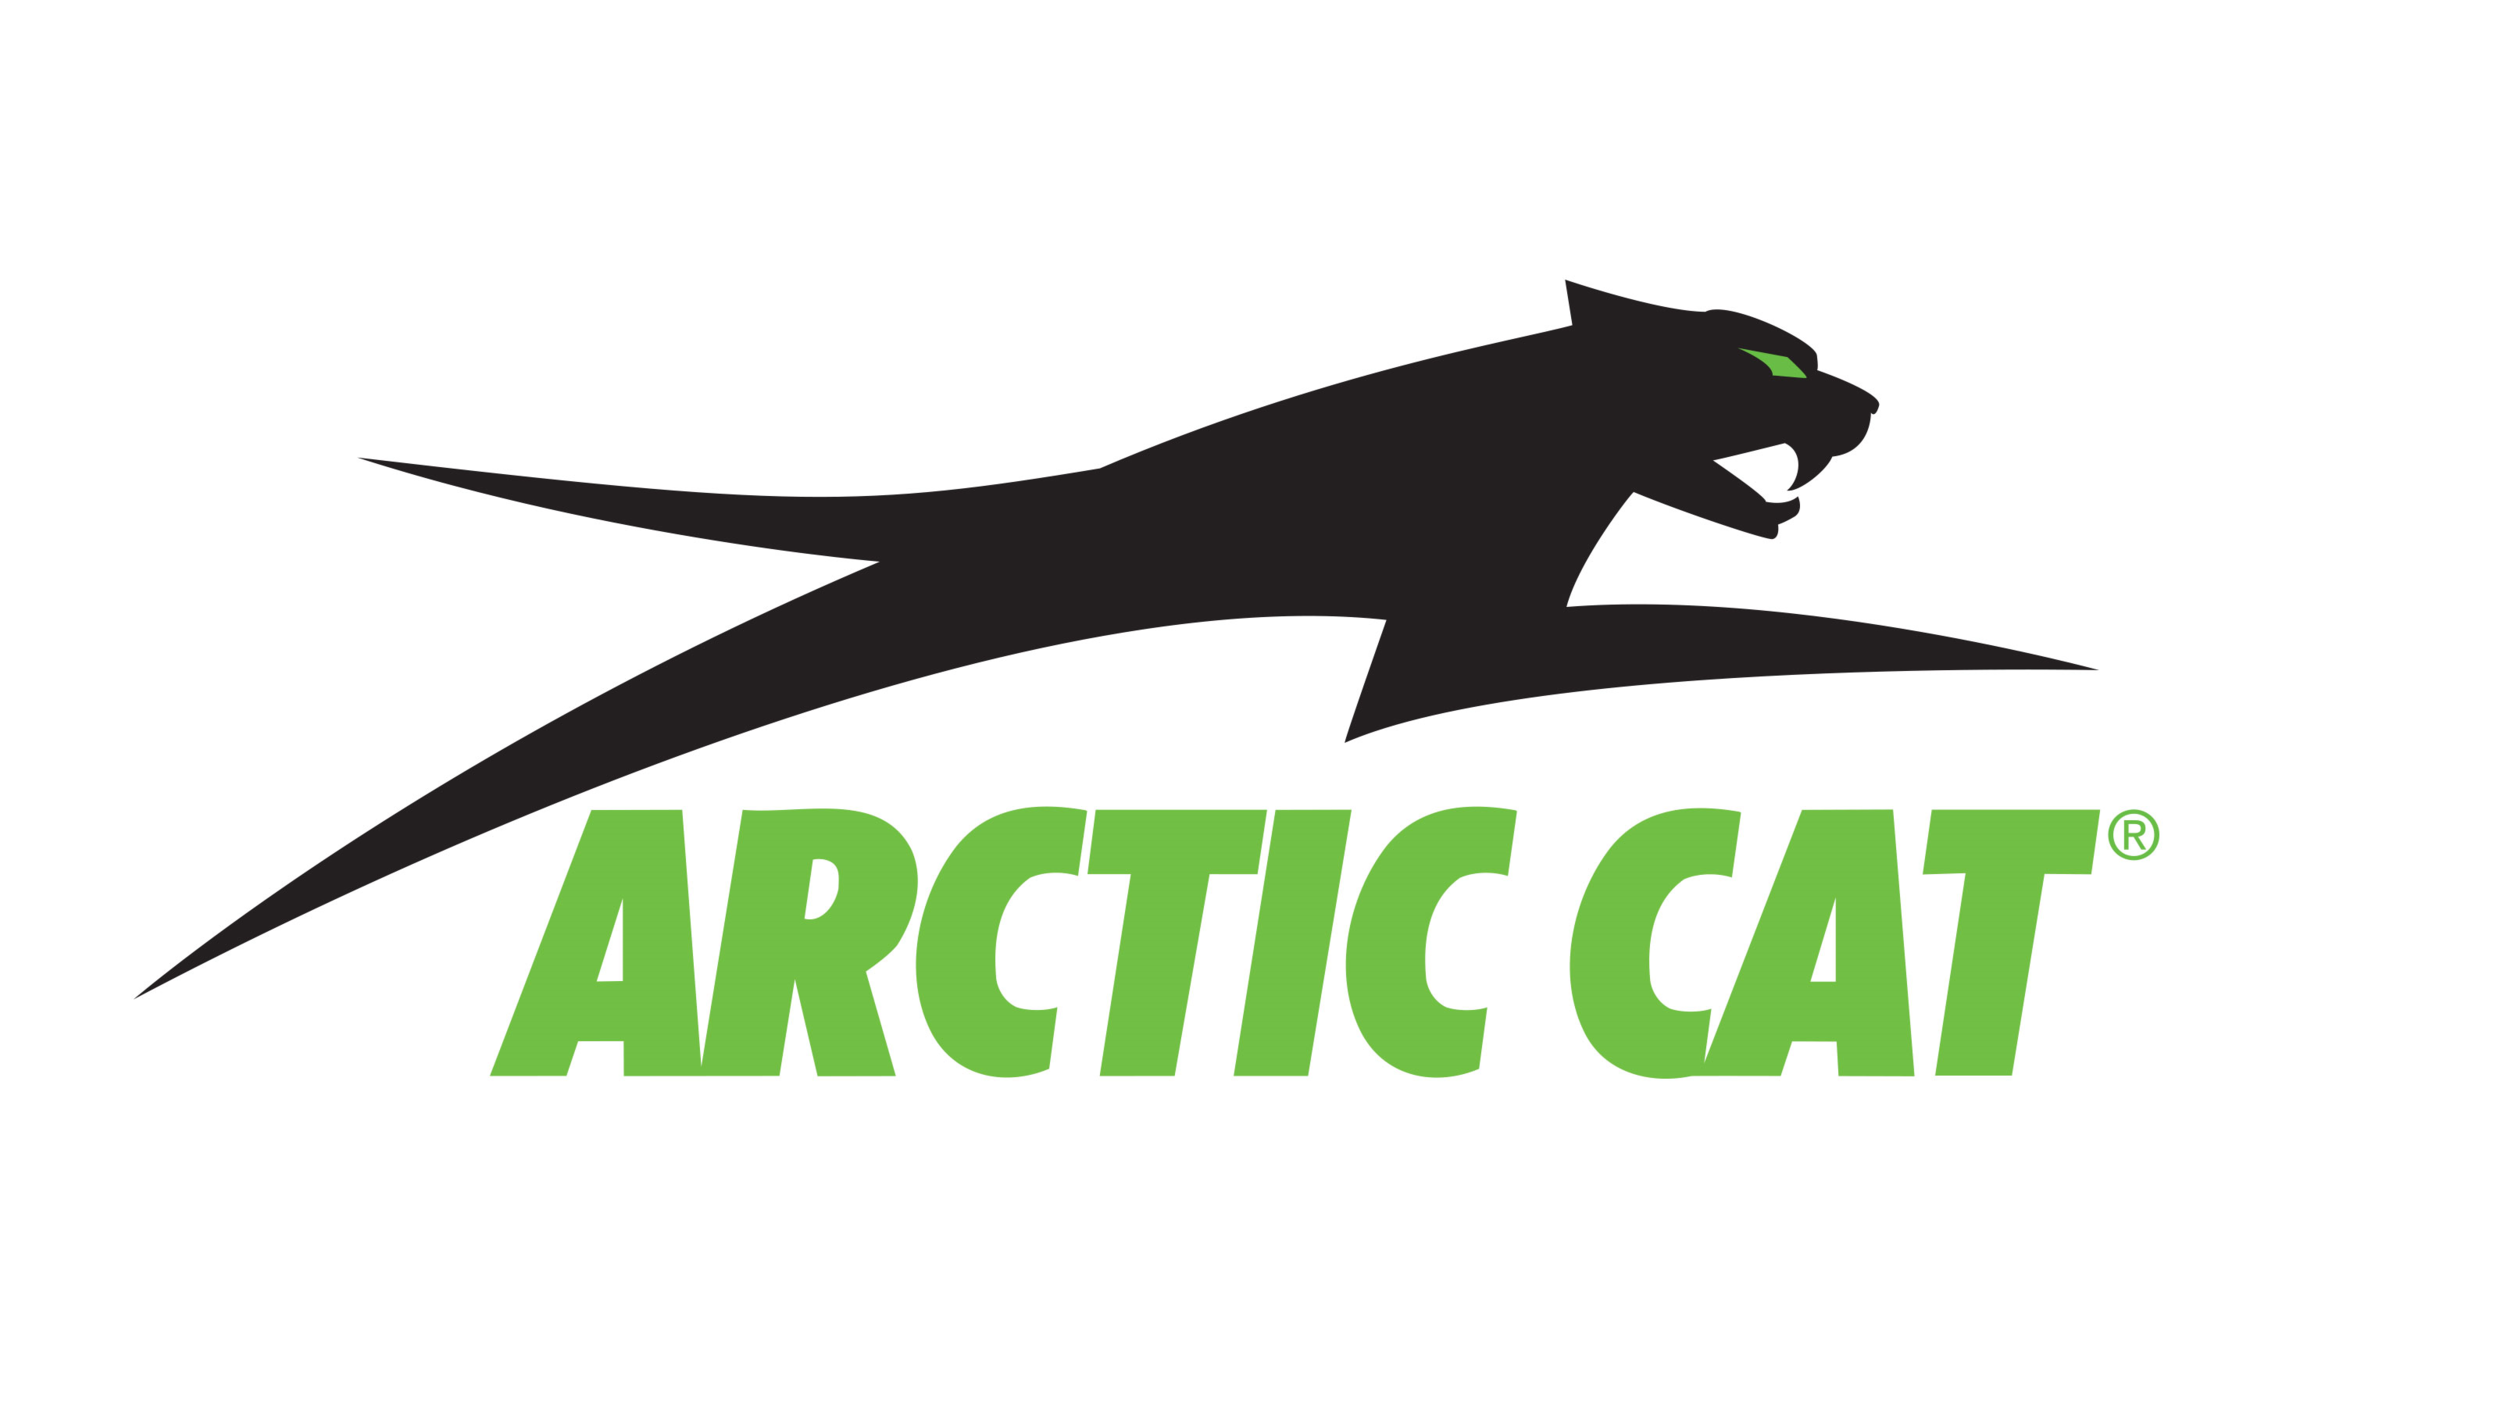 Thrive in the world of Arctic Cat. One of the industries leaders in snowmobiles, side x sides, and ATVs - https://arcticcat.txtsv.com/